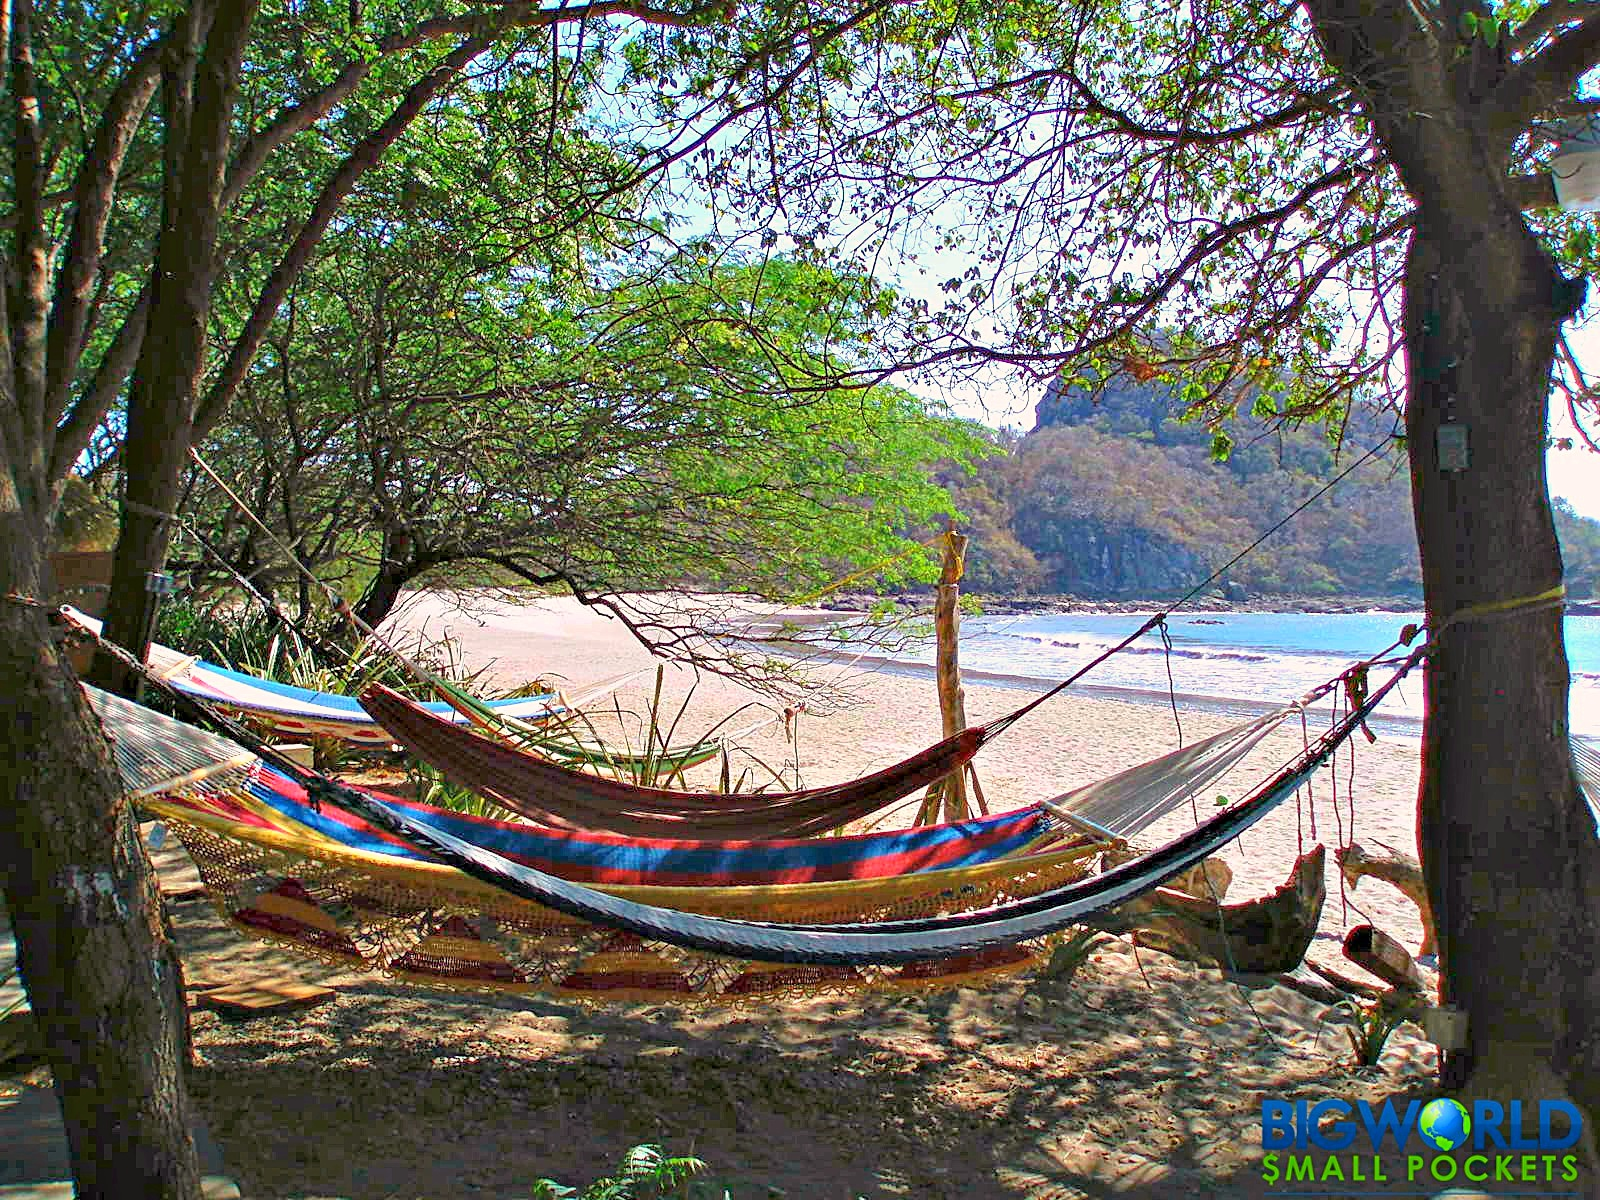 space hsgl in ftlr your hammocks hammock ft blue xx colombian for small single dfohome